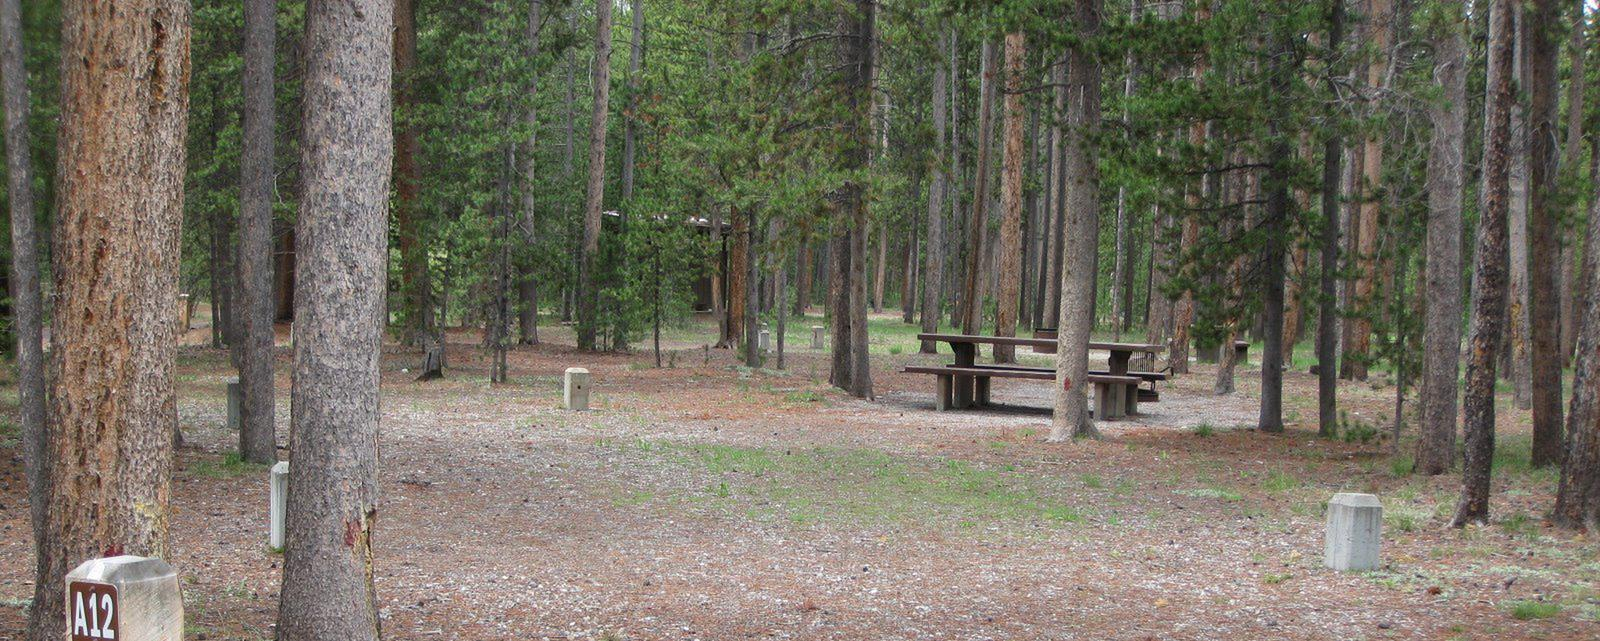 Site A11, surrounded by pine trees, picnic table & fire ringSite A11